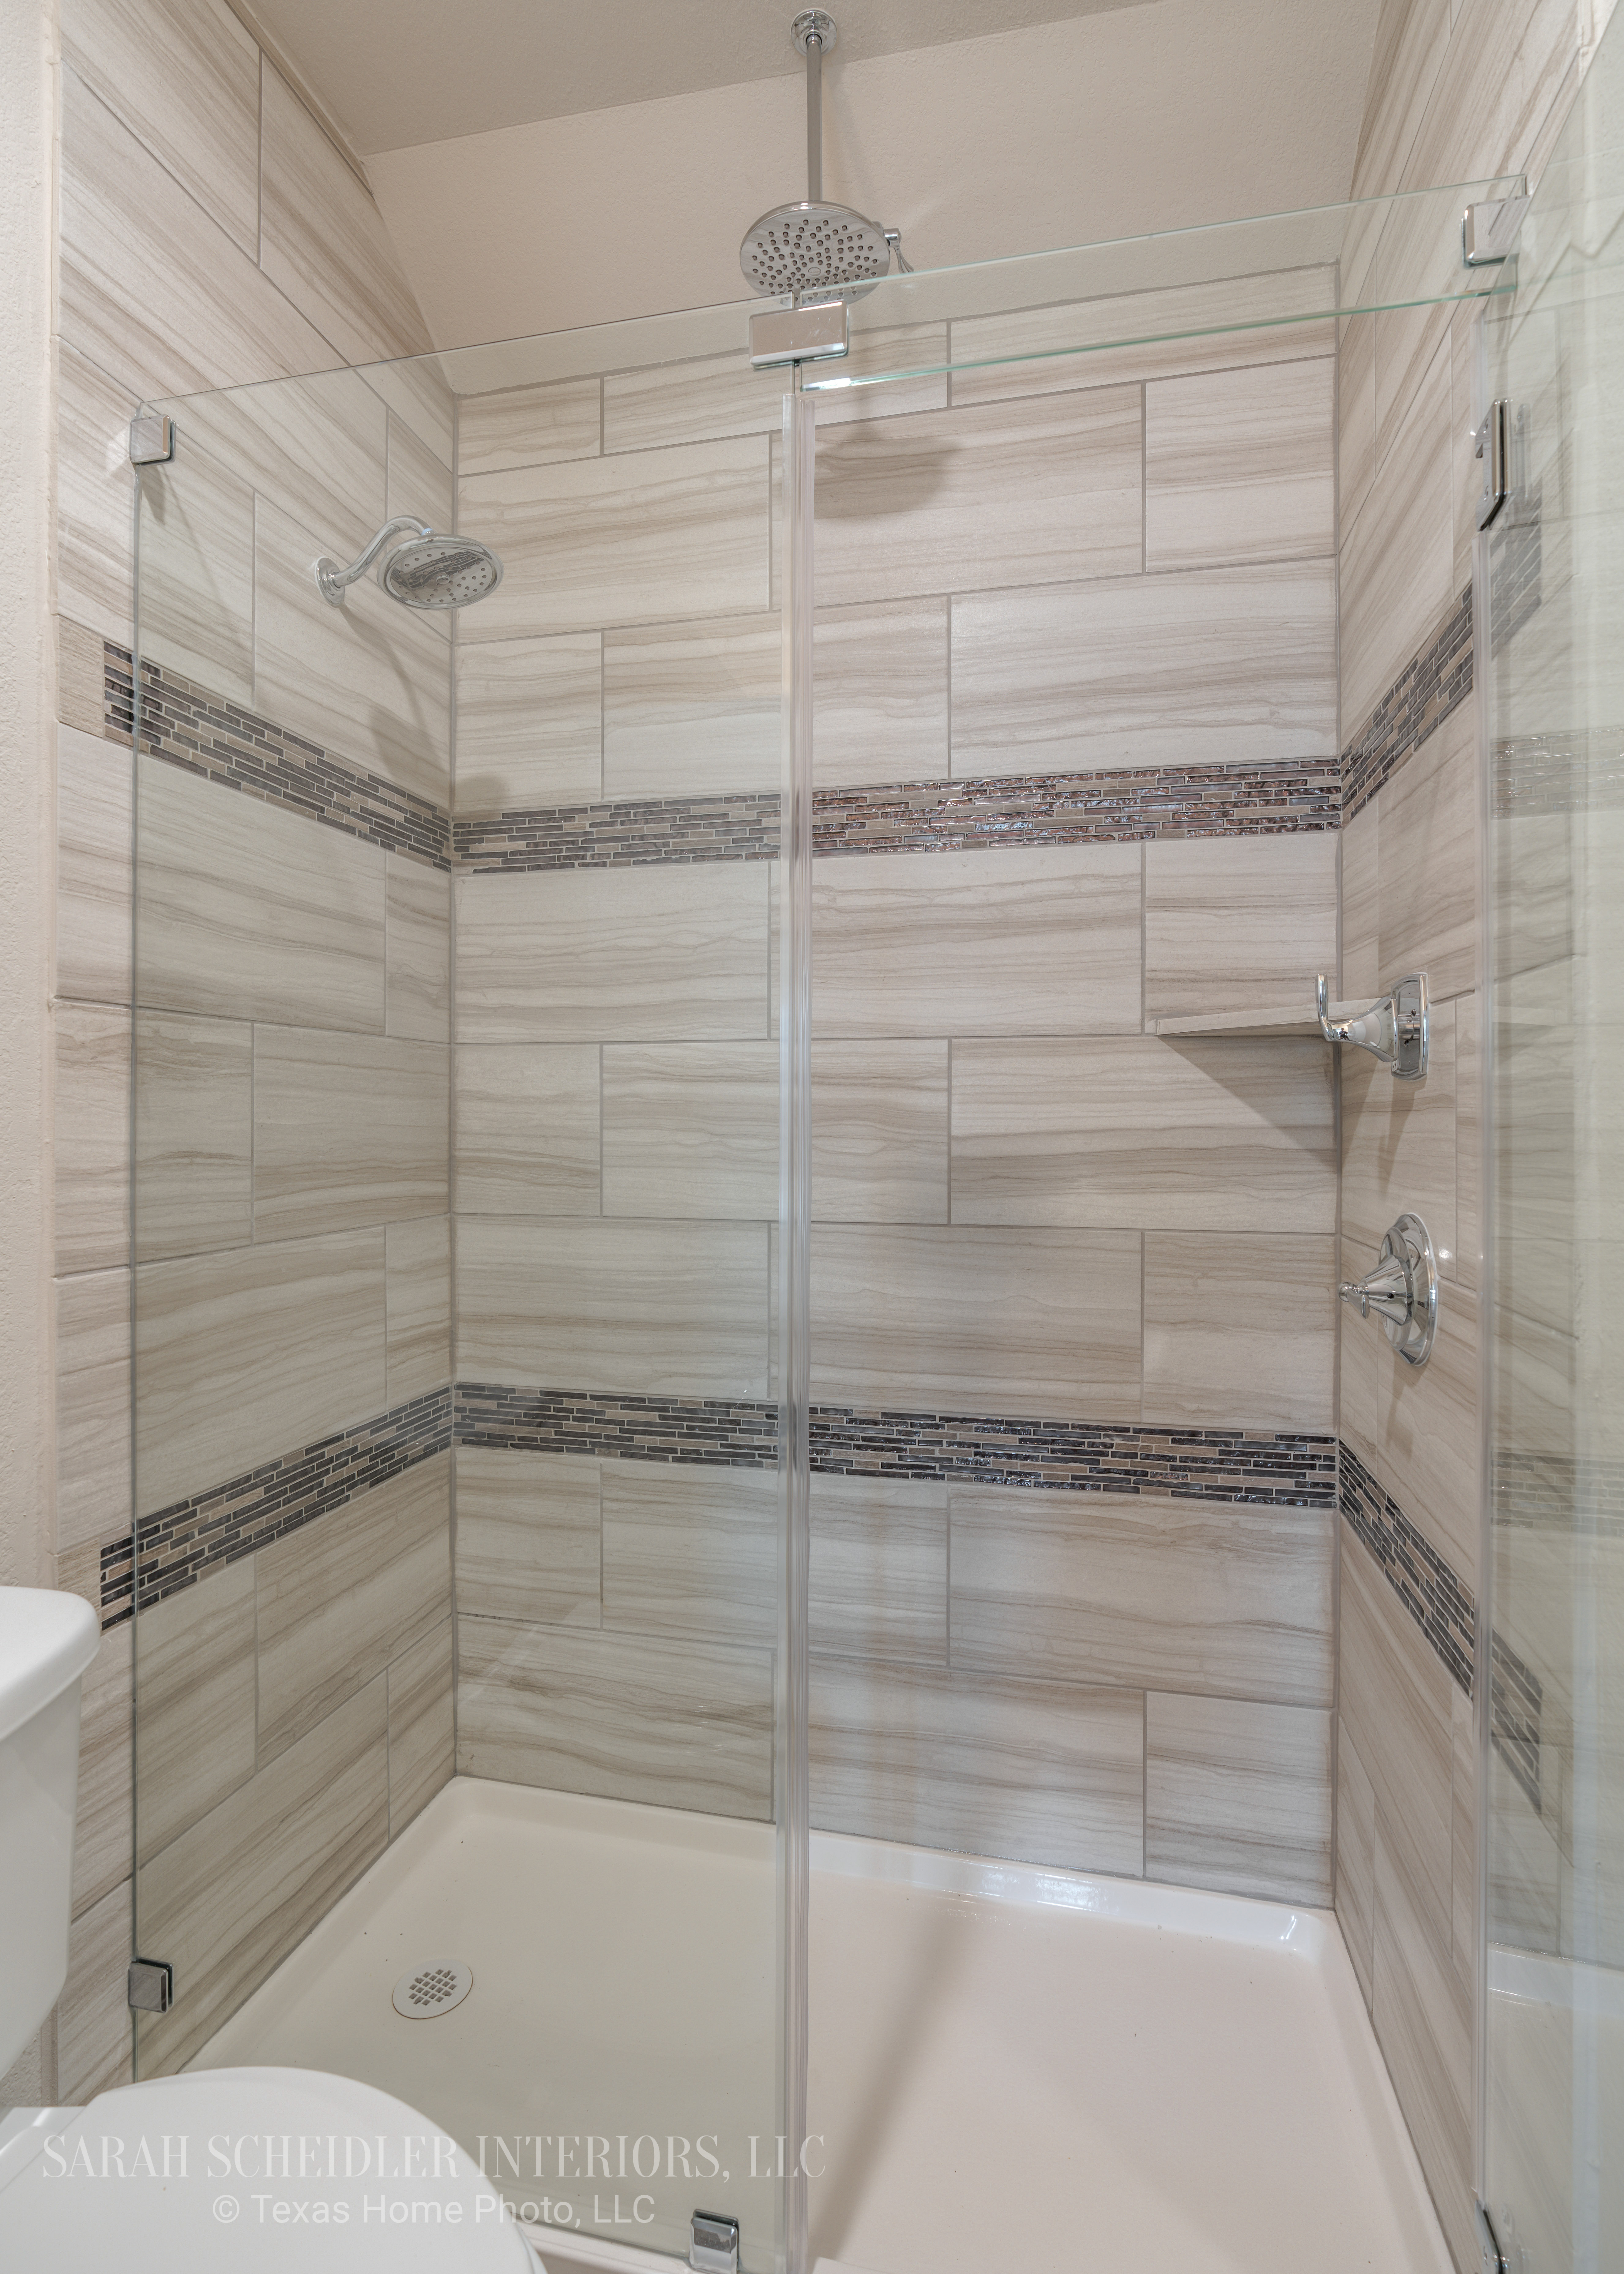 Secondary Bathroom Frameless Shower Design with Two Shower Heads, Glass Accent Tile, and Chrome Finishes